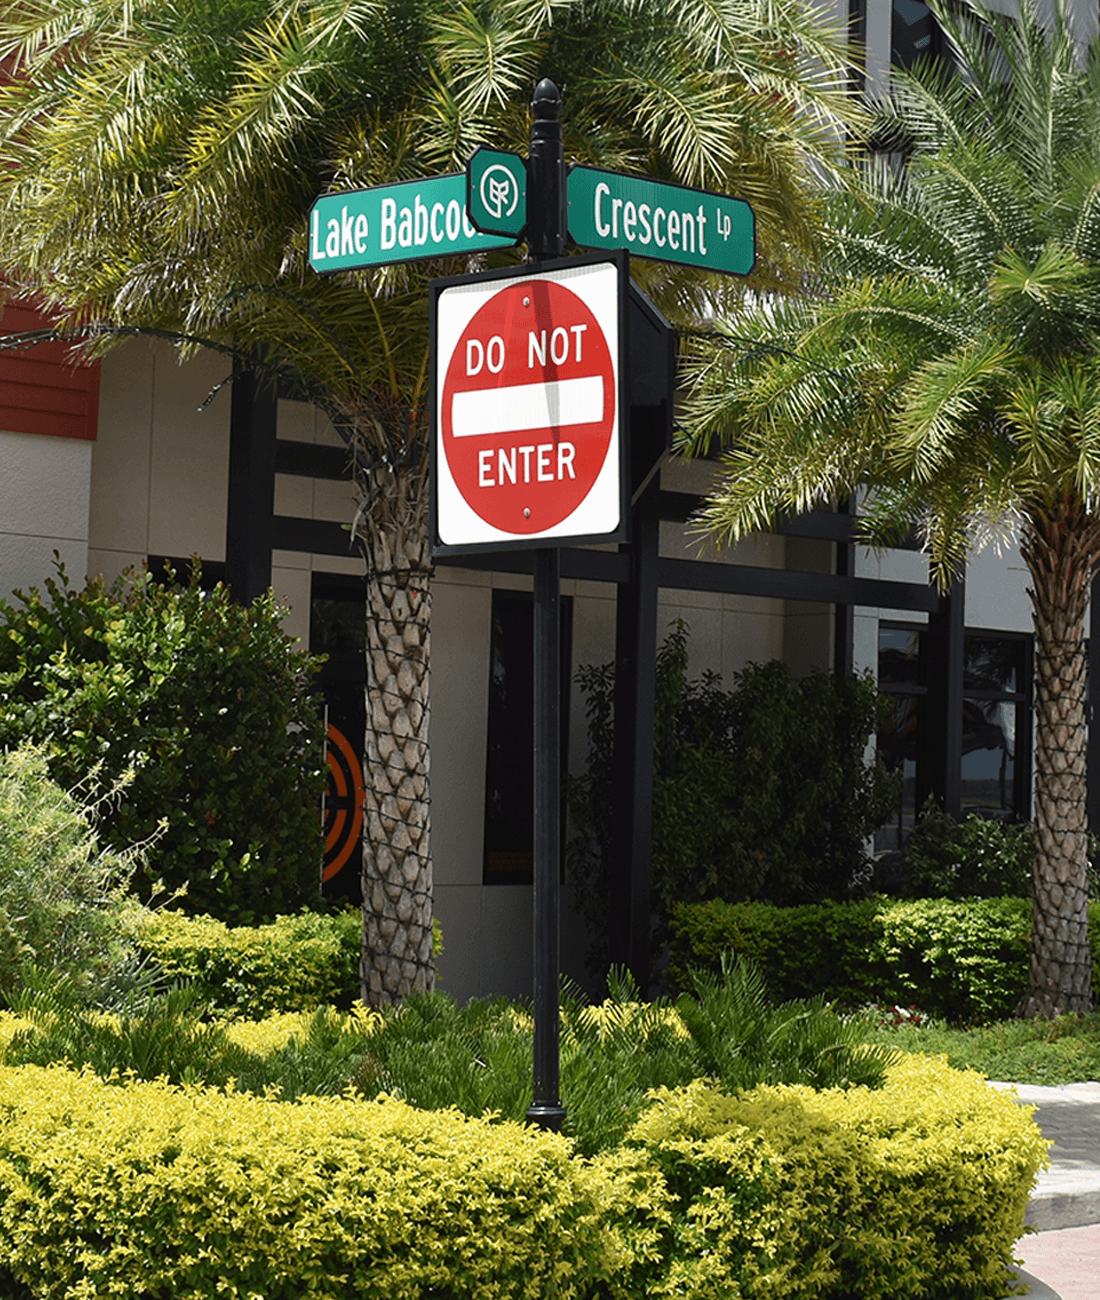 Historic Collection Do Not Enter R5-1 and Chamfered Street Signs